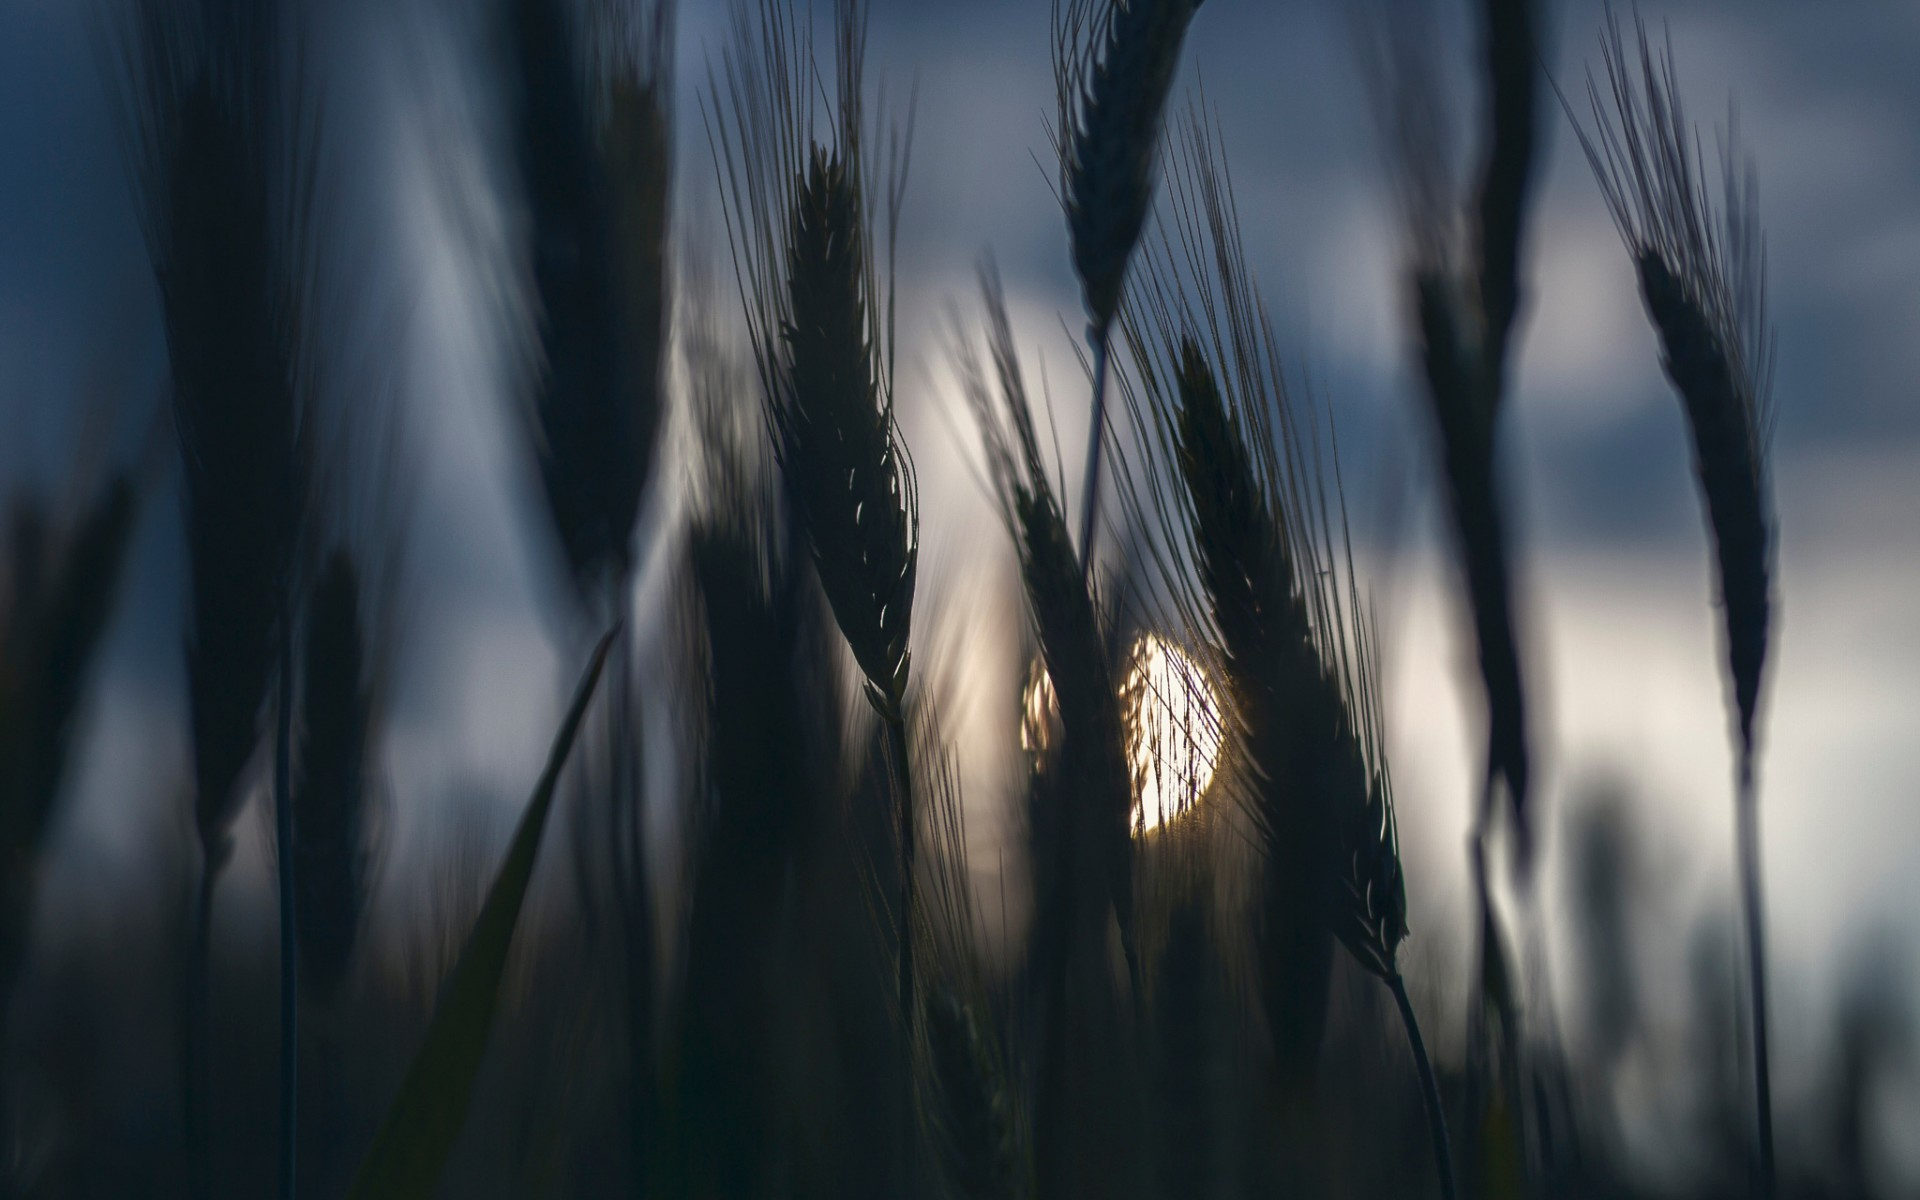 Ears of wheat in the moonlight